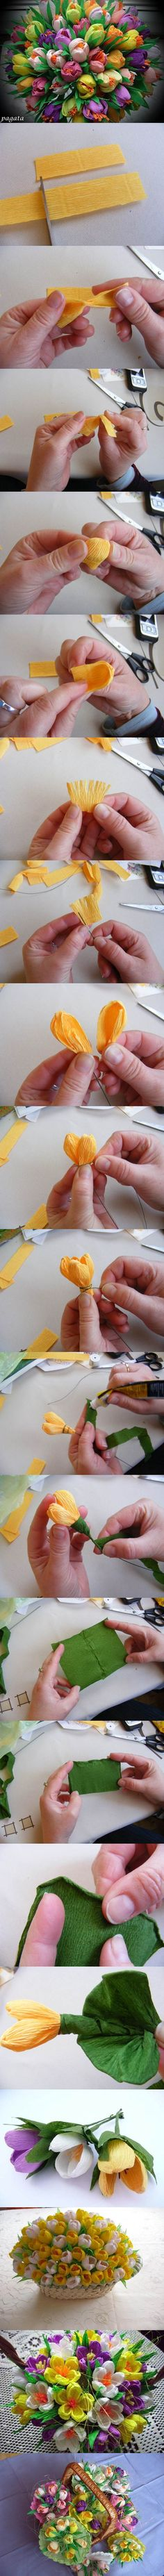 DIY Beautiful Bouquet of Crepe Paper Crocuses | iCreativeIdeas.com Like Us on Facebook ==> https://www.facebook.com/icreativeideas